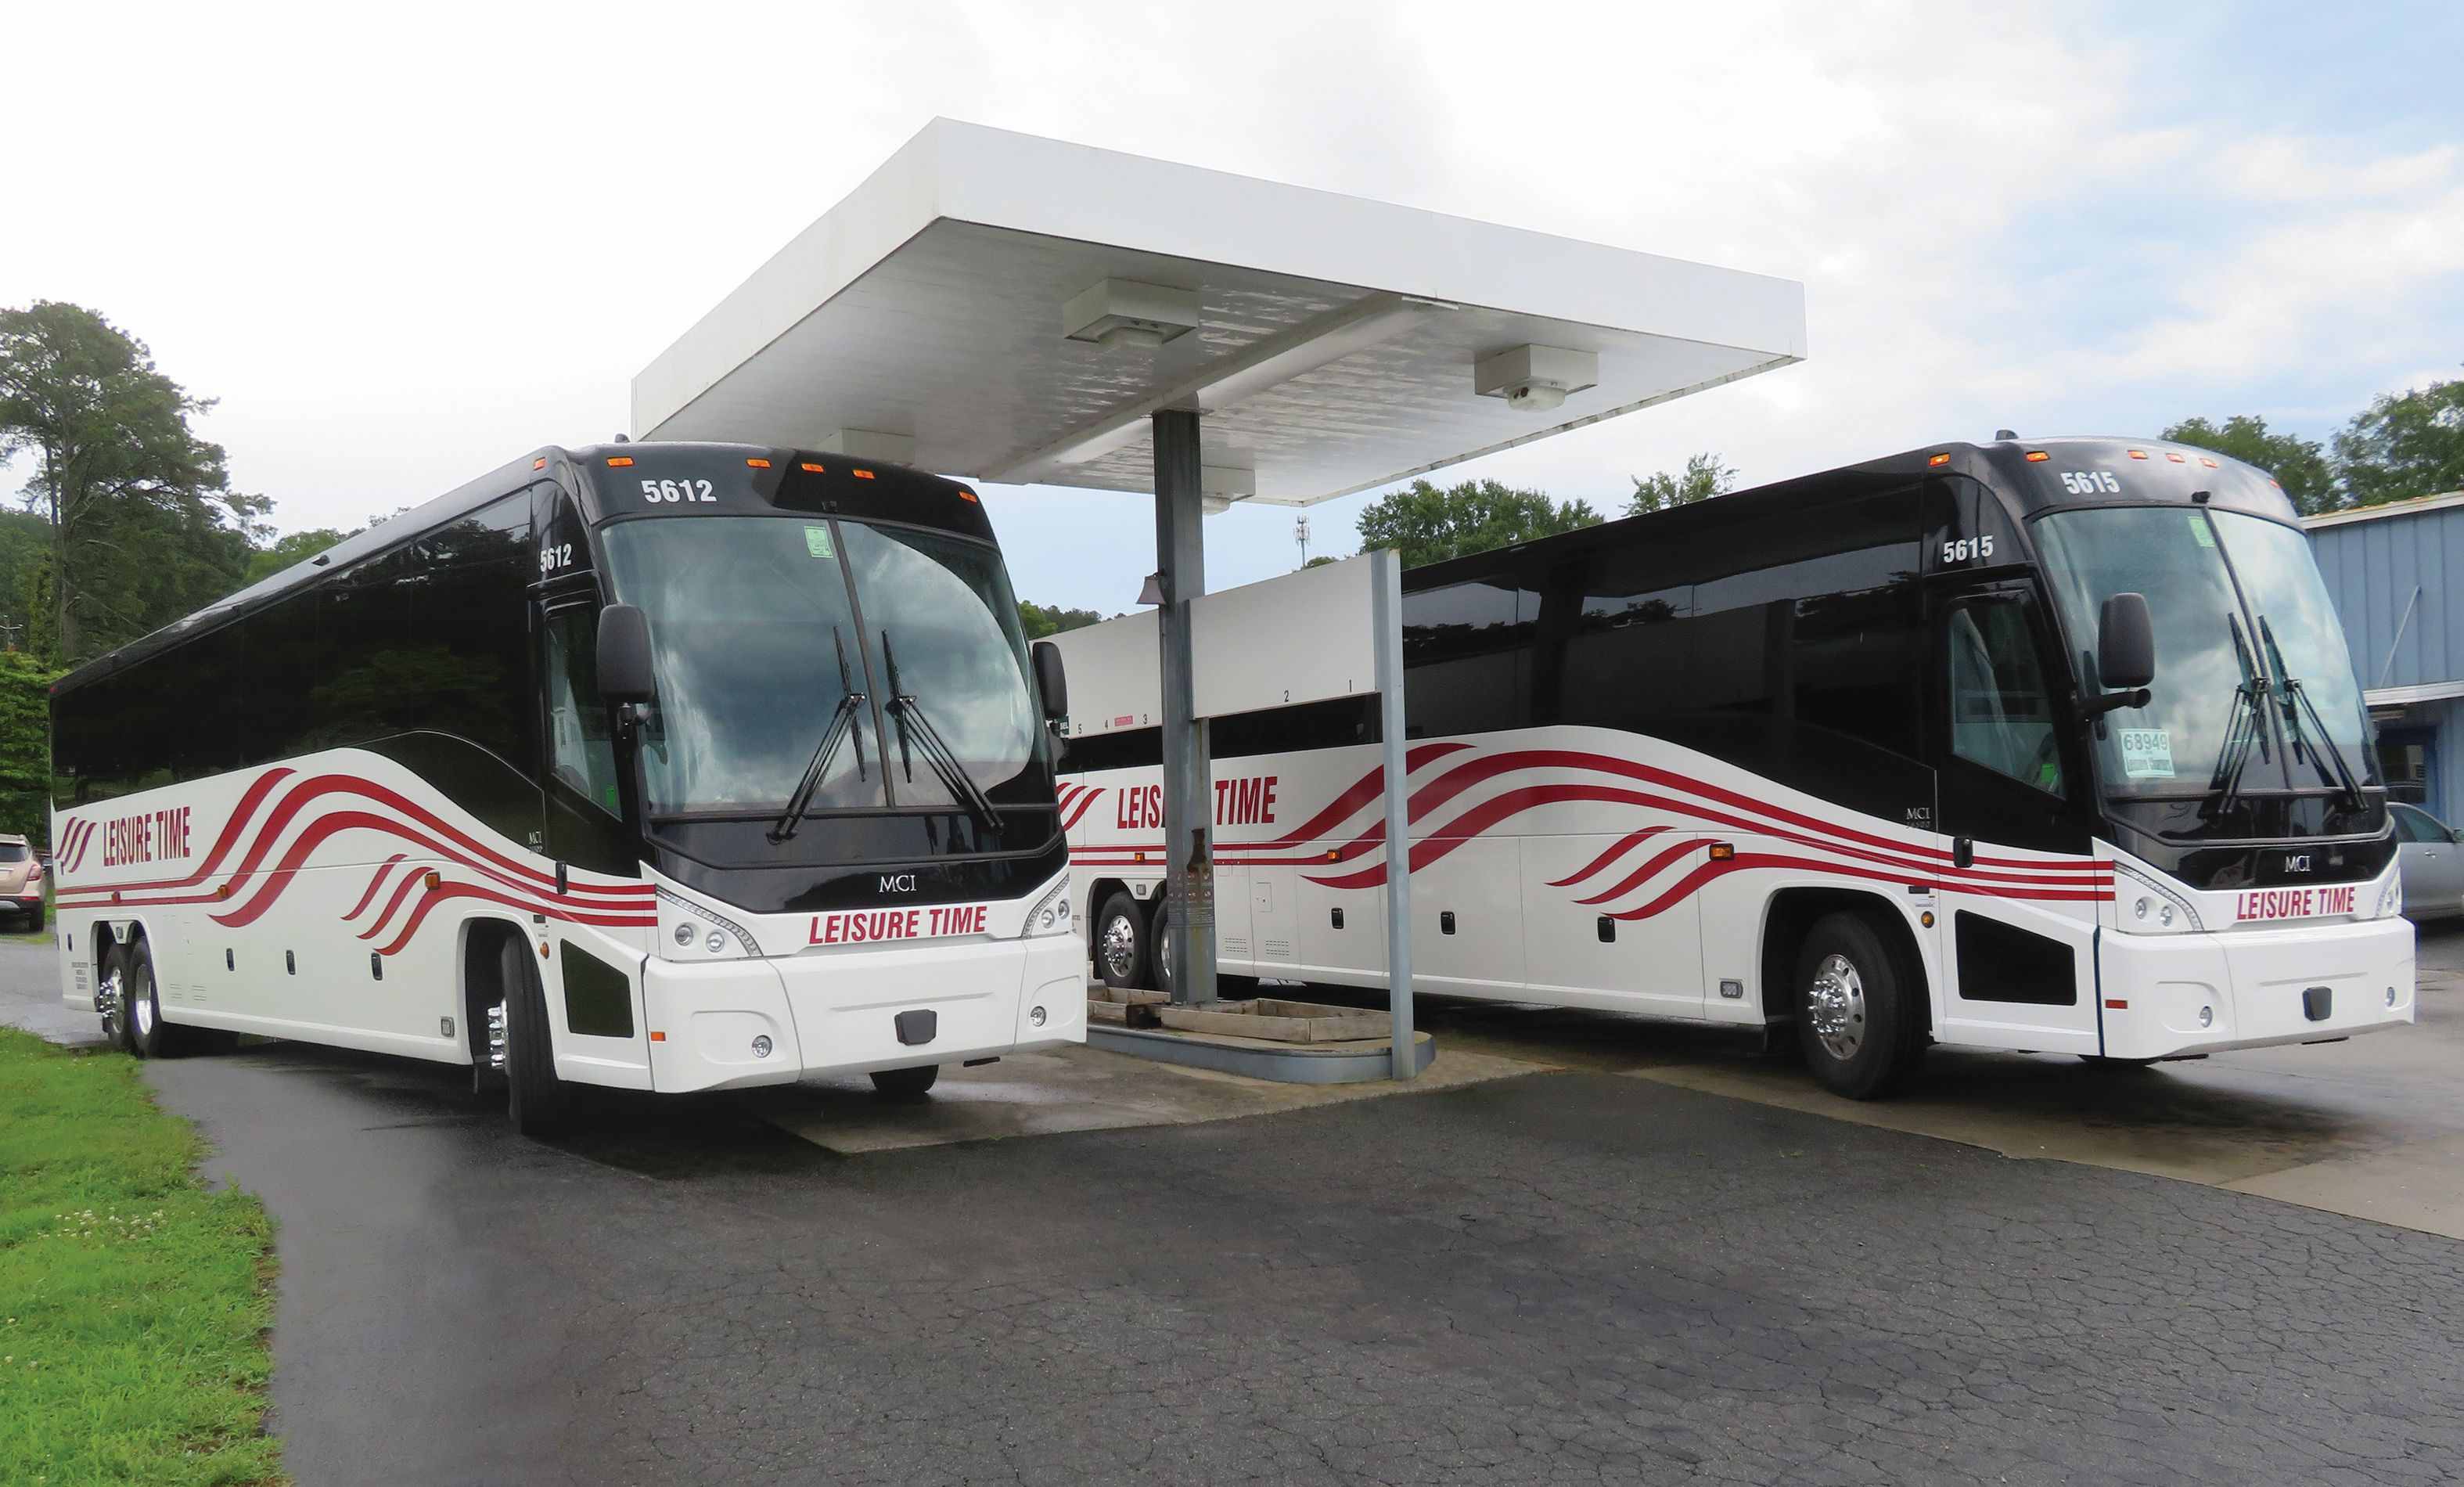 Motorcoach, School Bus Industries Question Why the CERTS Act is Being Ignored